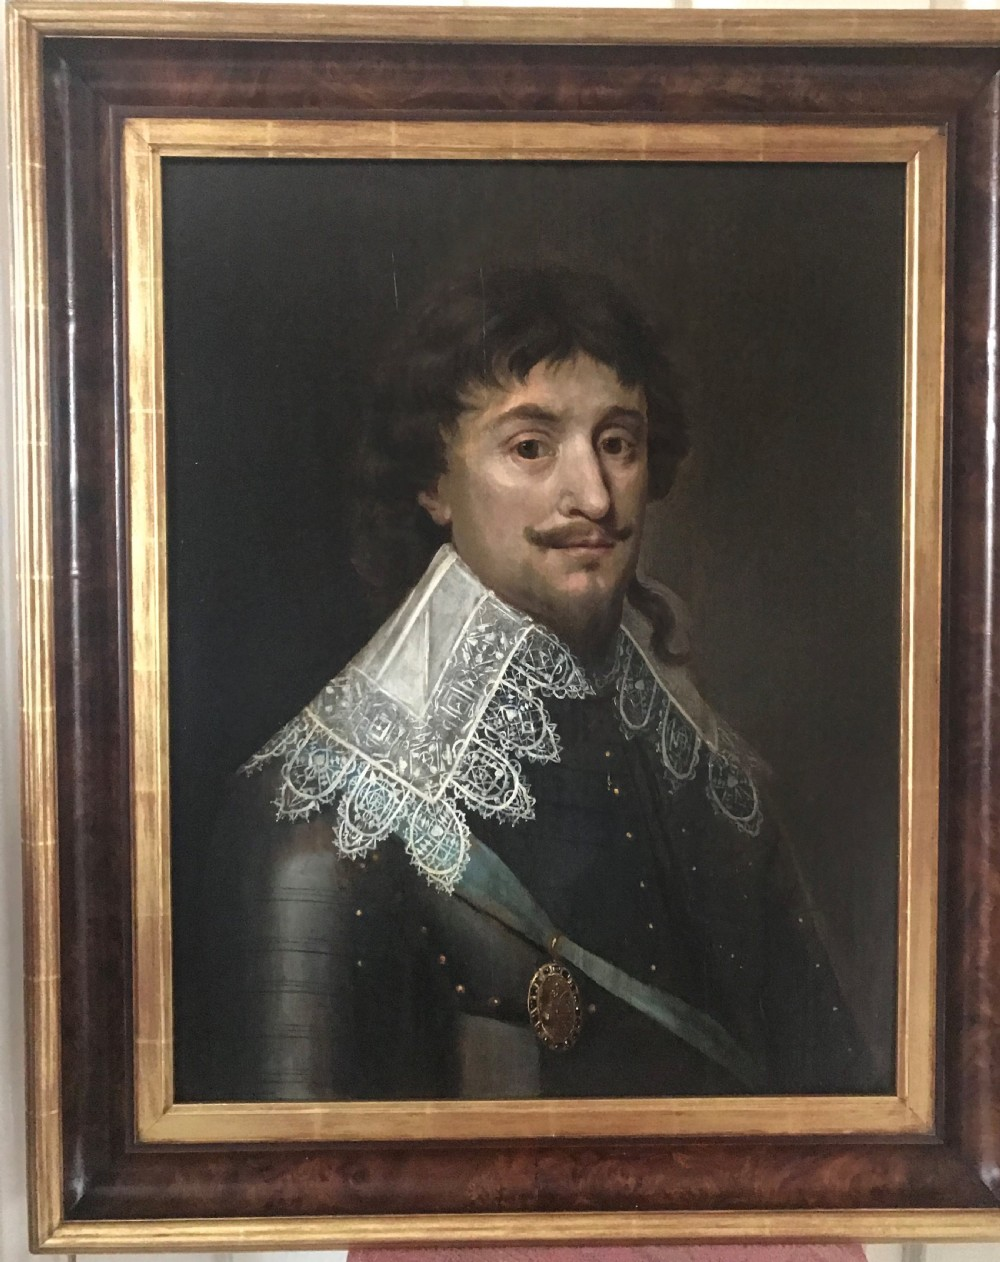 portrait of frederick of bohemia the winter king c1620 after gerrit van honthorst